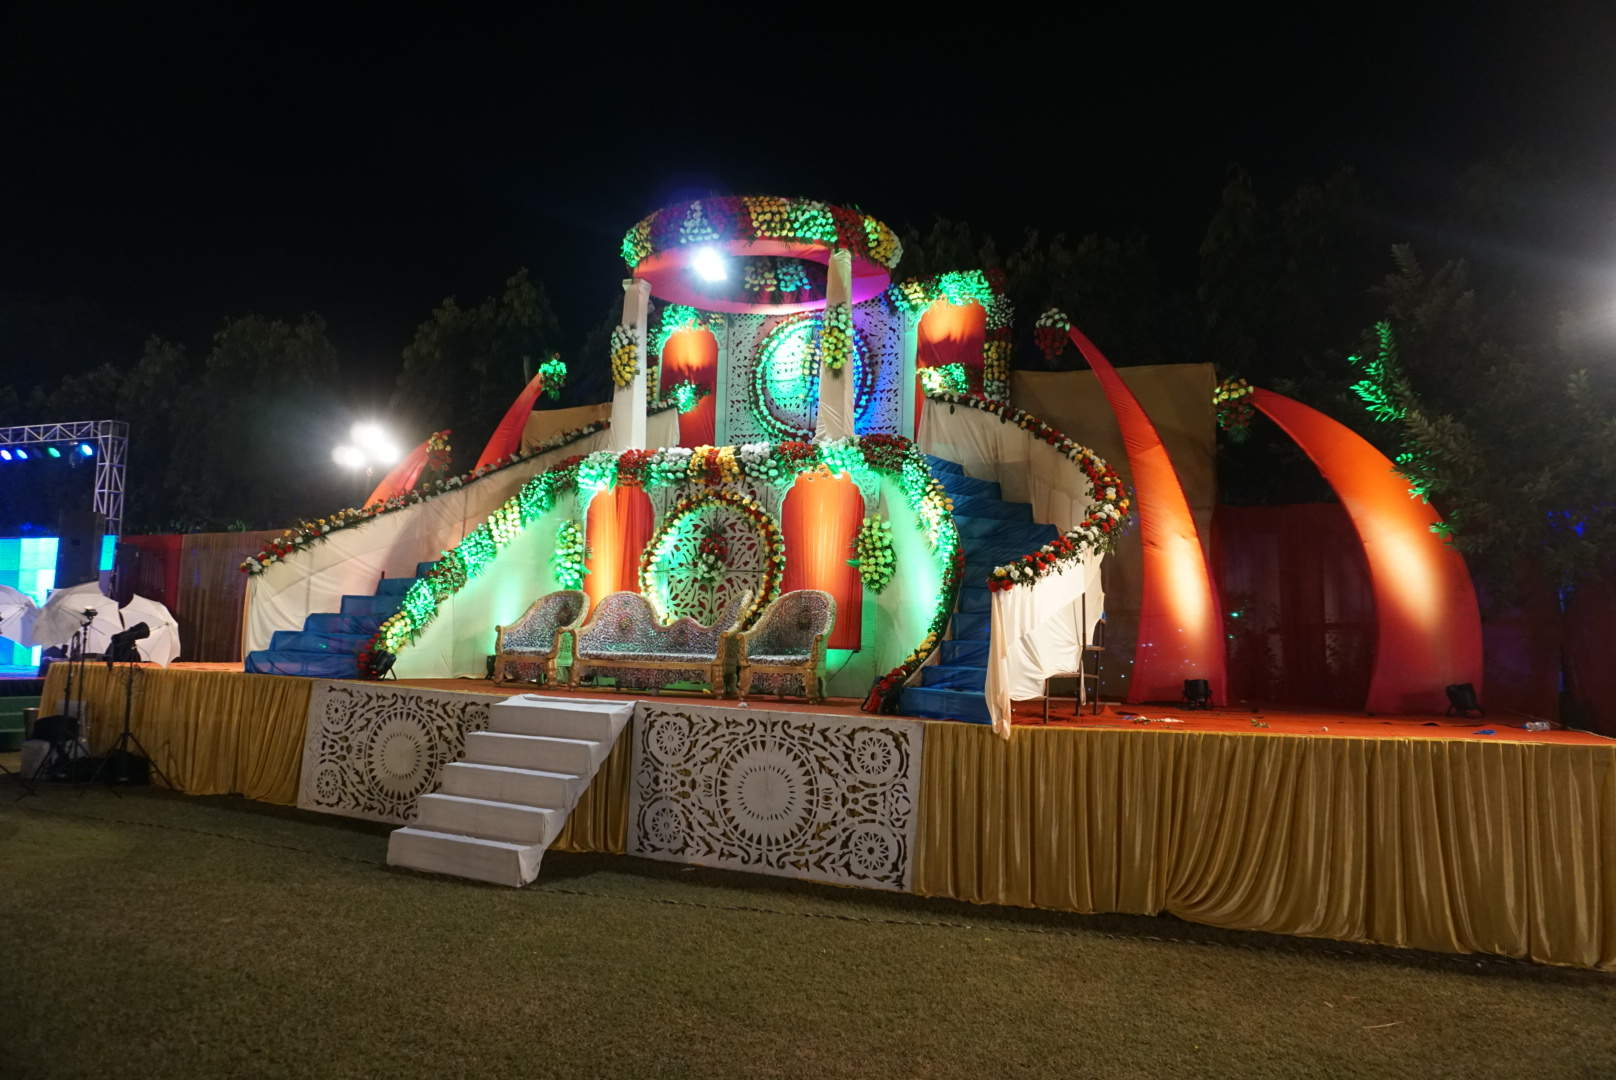 The Royal Garden Marriage Home Firozabad